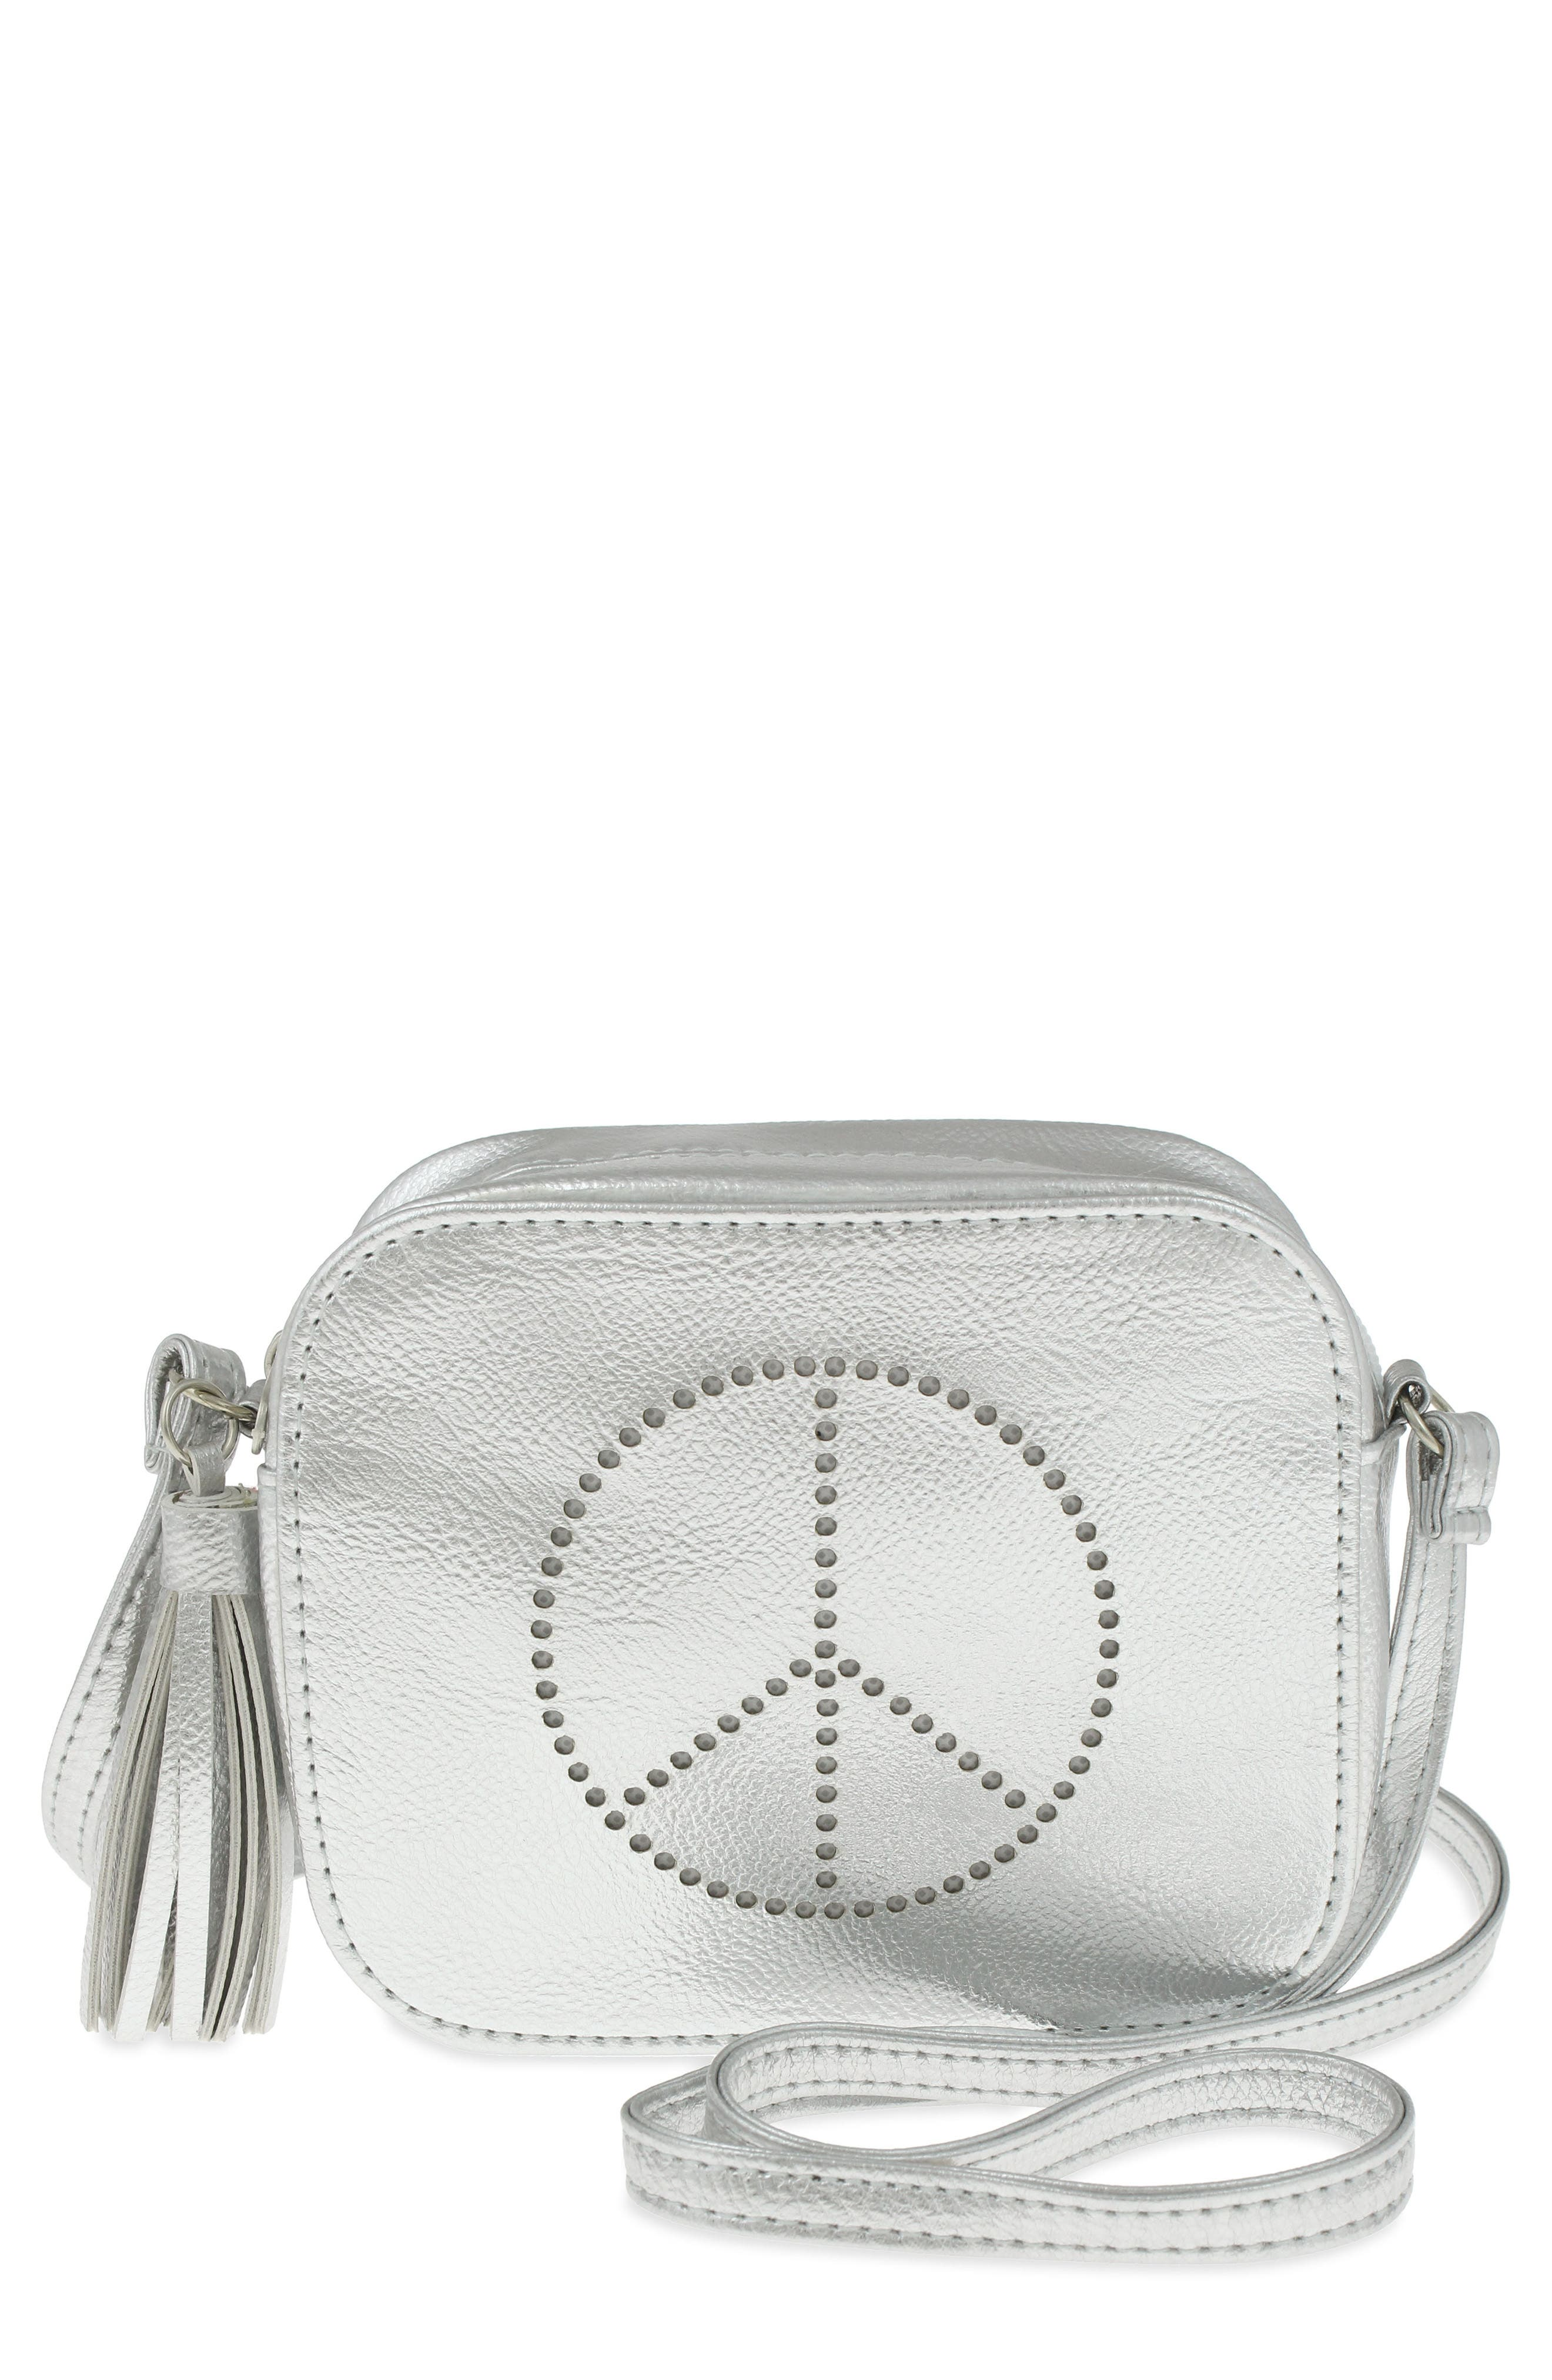 Peace Sign Faux Leather Crossbody Bag,                             Main thumbnail 1, color,                             Silver Combo